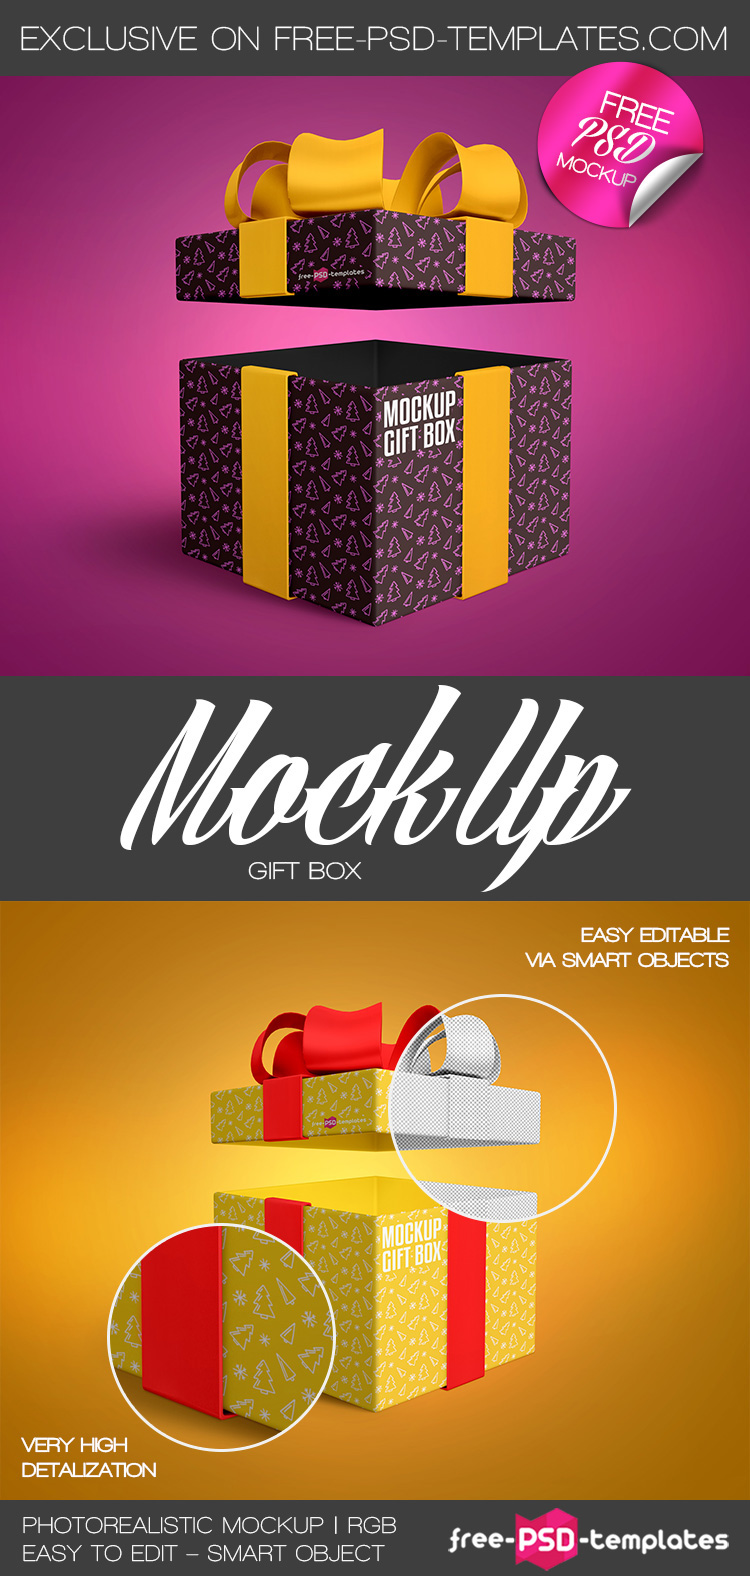 Free gift box mock up in psd on behance download free gift box mock up in psd and use it for creating presentations and implement your professional ideas into life work in photoshop to add any negle Choice Image